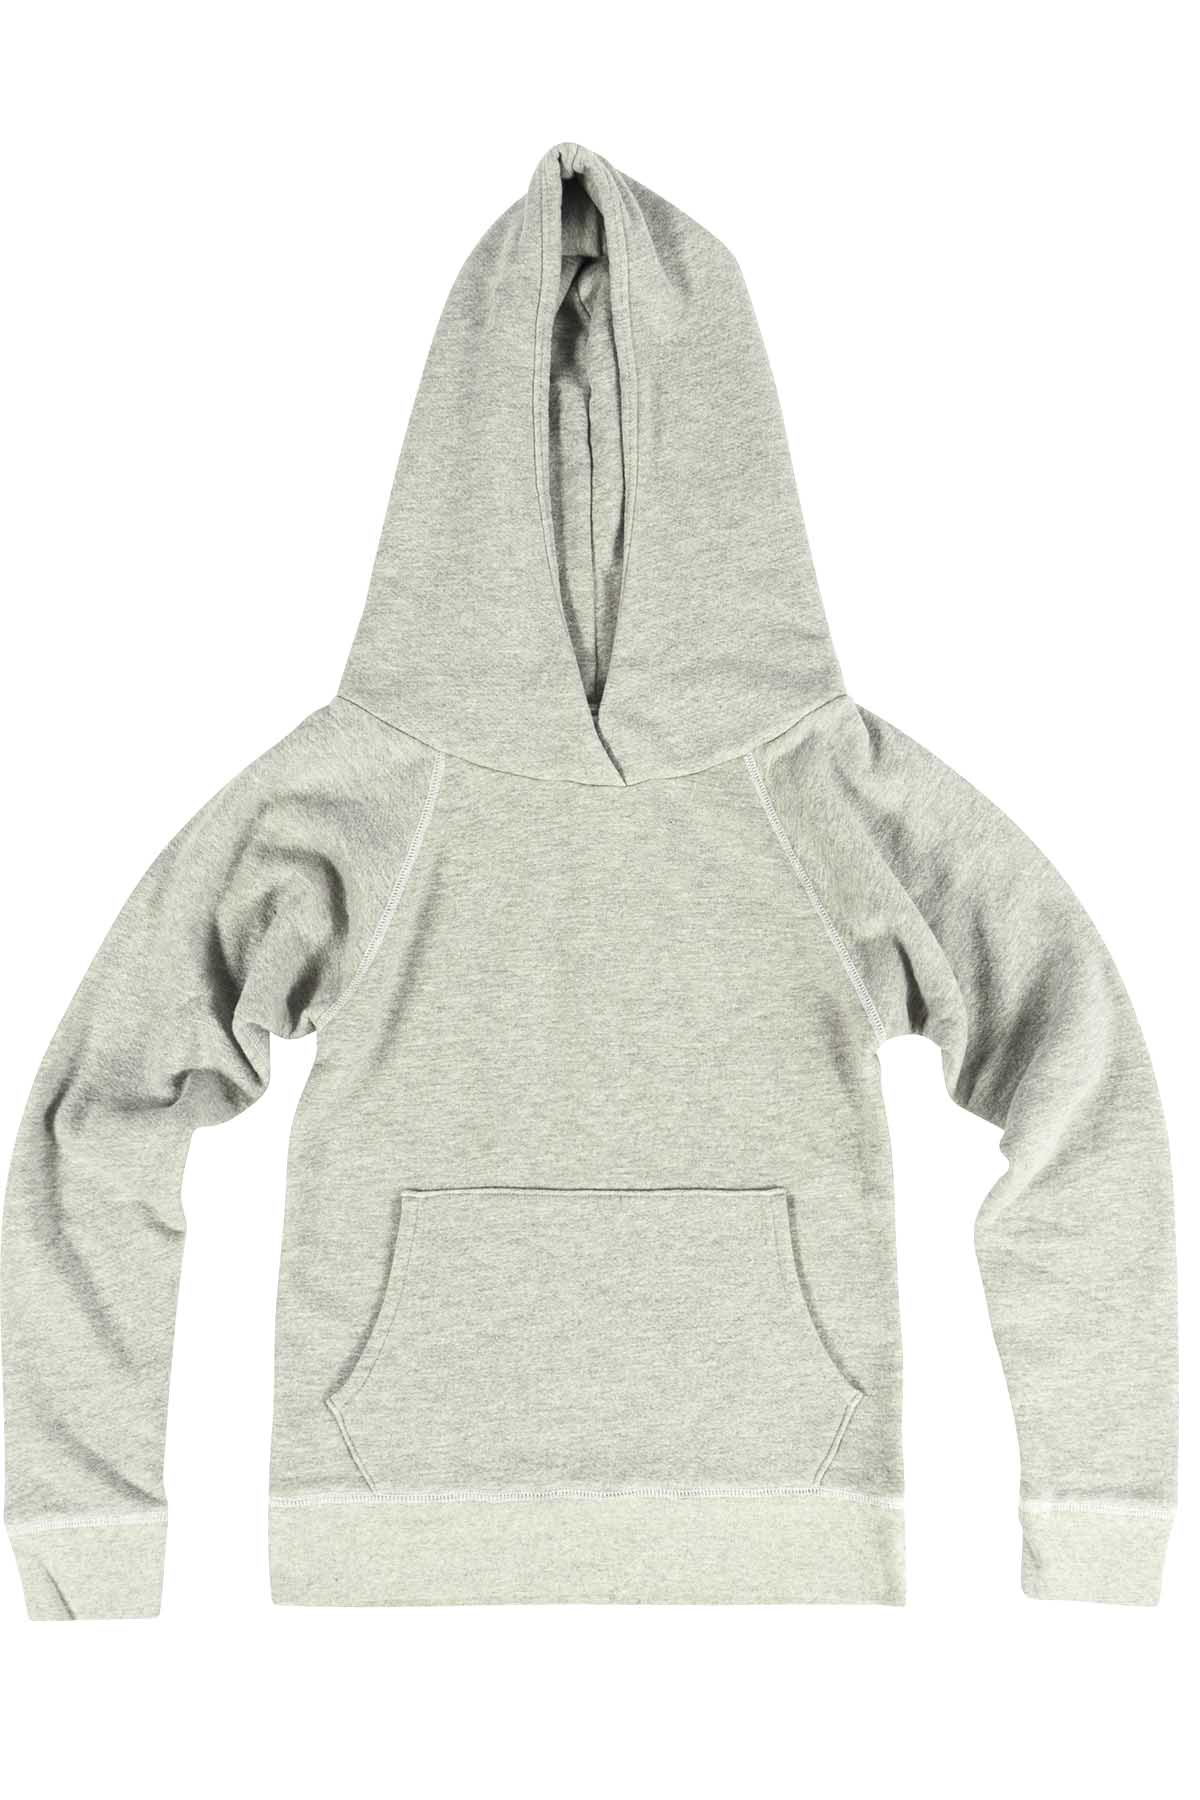 Rxmance Heather Grey Hooded Sweatshirt